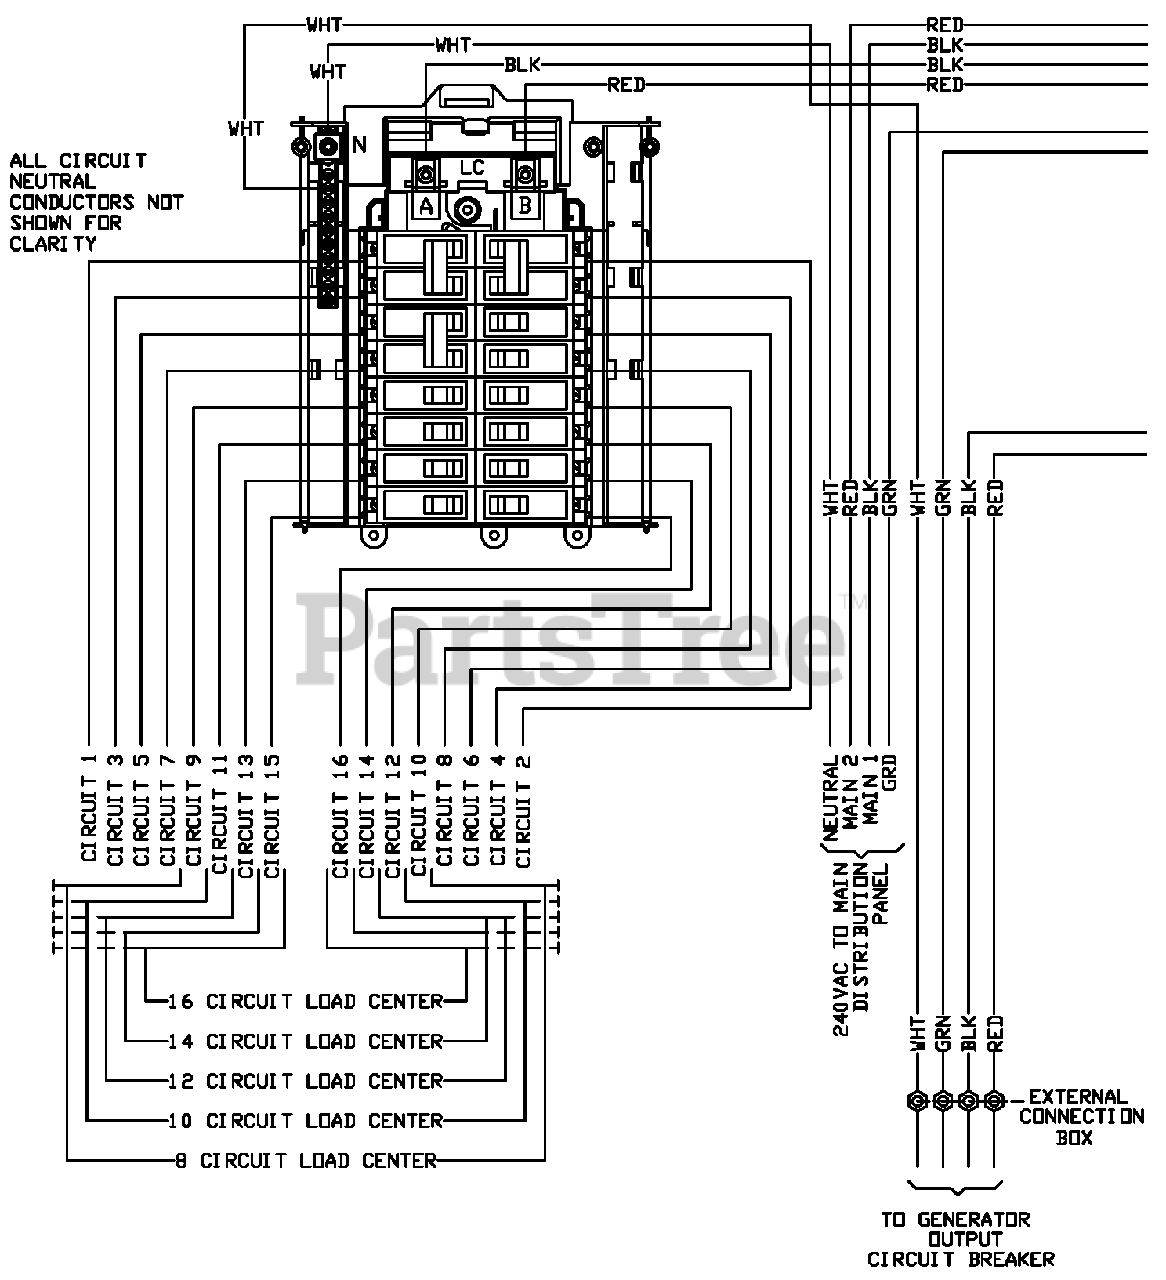 Generac RTG16EZA1 - Generac Power Transfer Switch (SN: 8652458 - 9574364)  (2015) Wiring Diagram (0H6453) Parts Lookup with Diagrams | PartsTree | 6 Circuit Transfer Switch Wiring Diagram |  | PartsTree